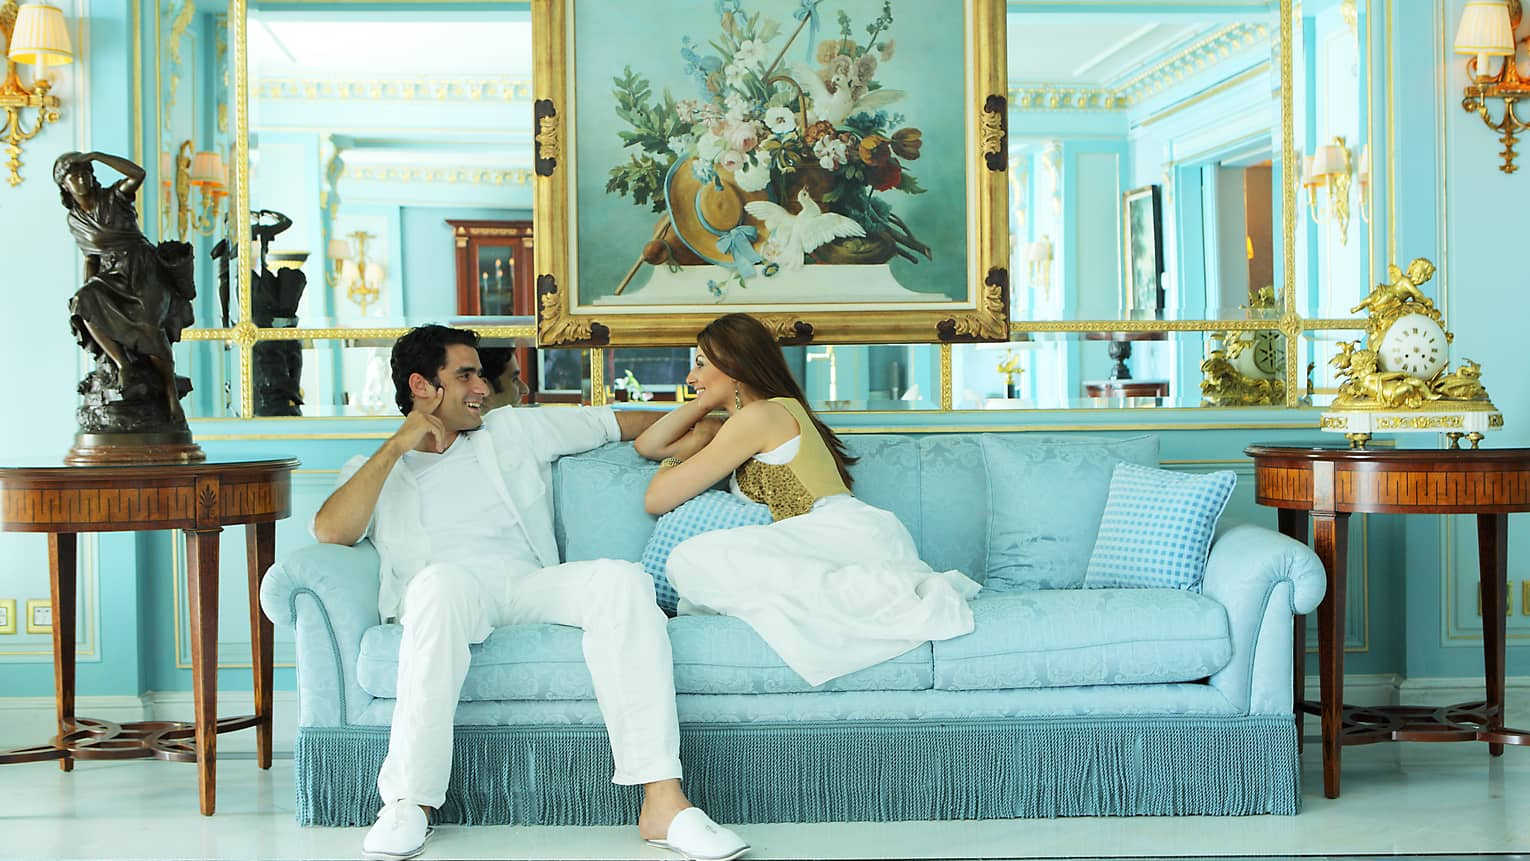 Man and woman smile, relax on blue sofa in Presidential Suite below large mirror, painting, beside statues